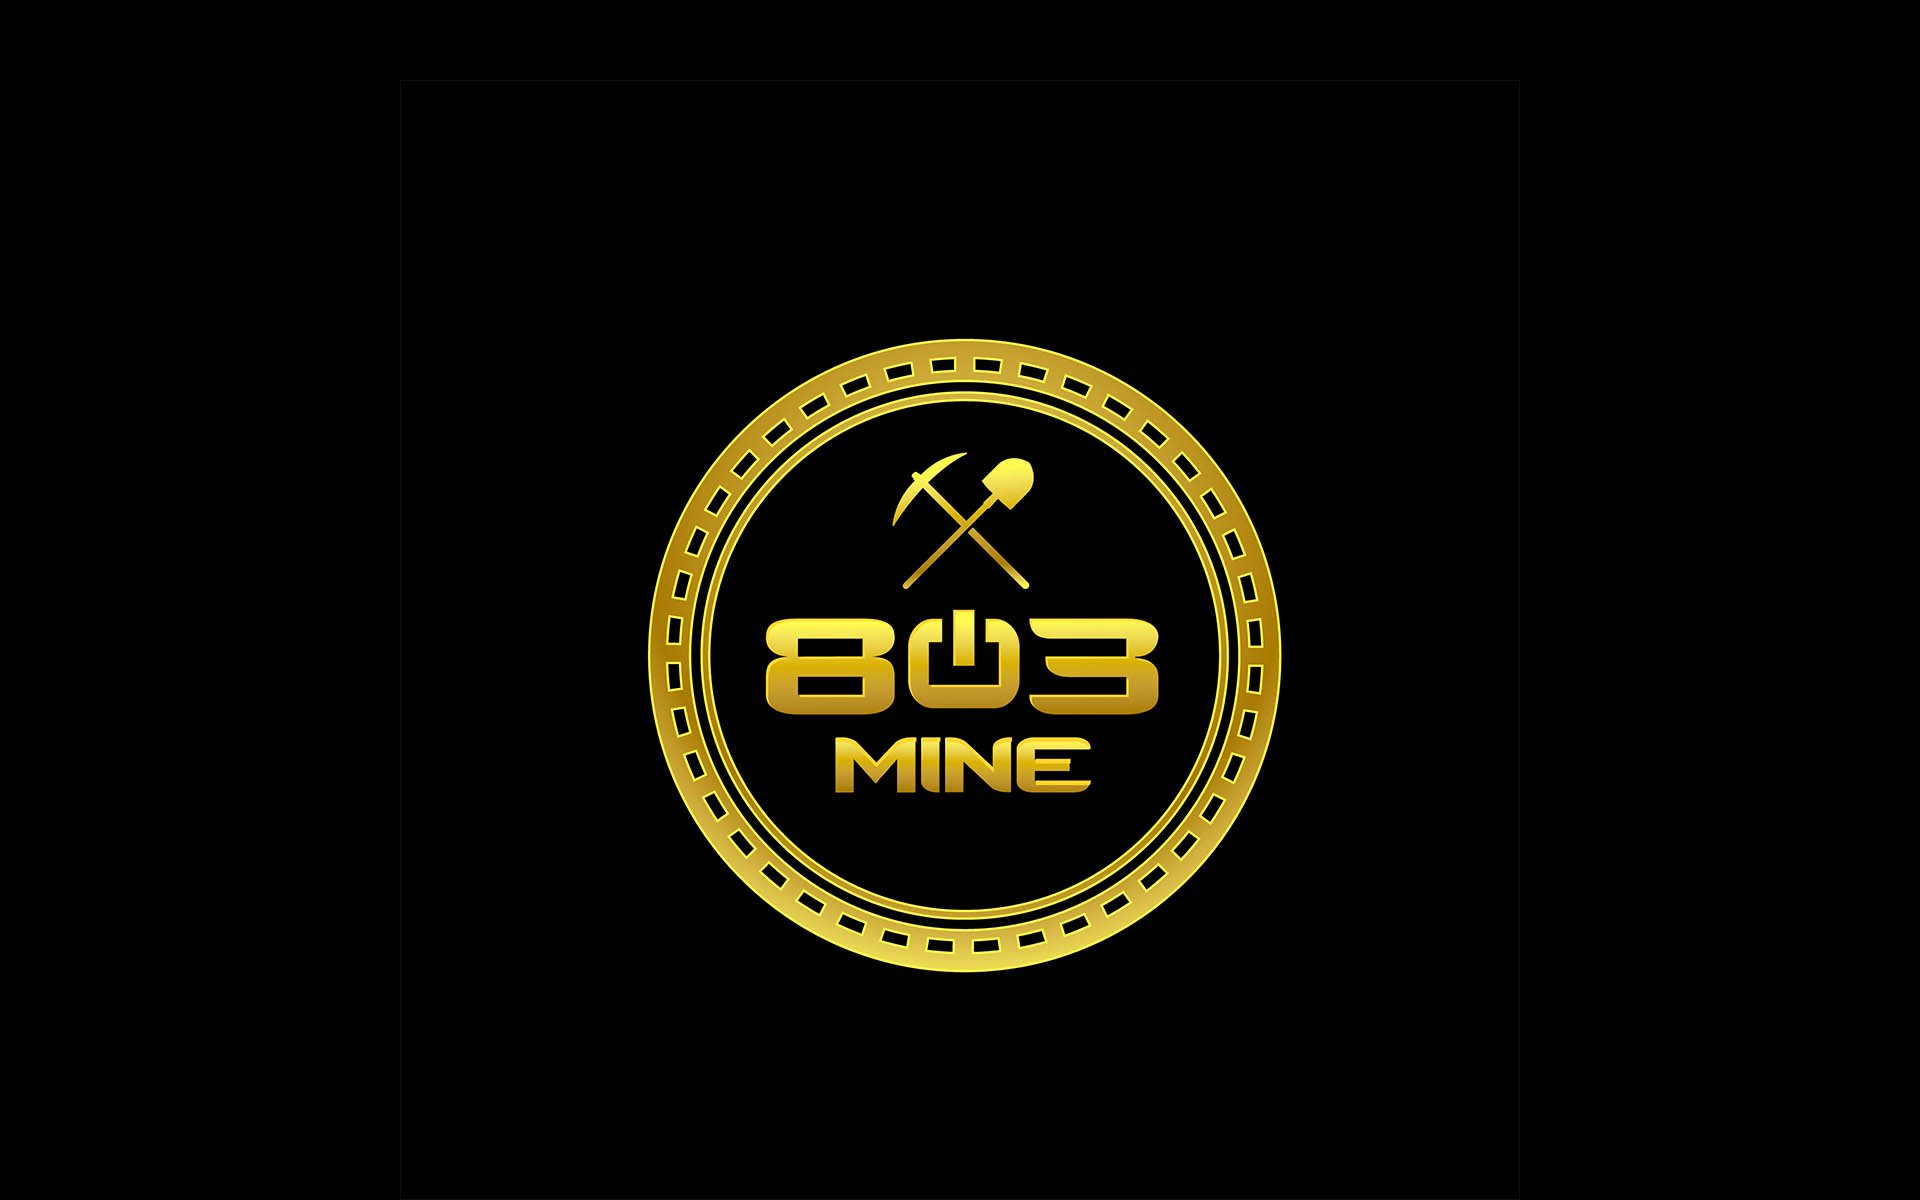 803 Mine Launches ICO Pre-Sale - Forever Changes Bitcoin Investing